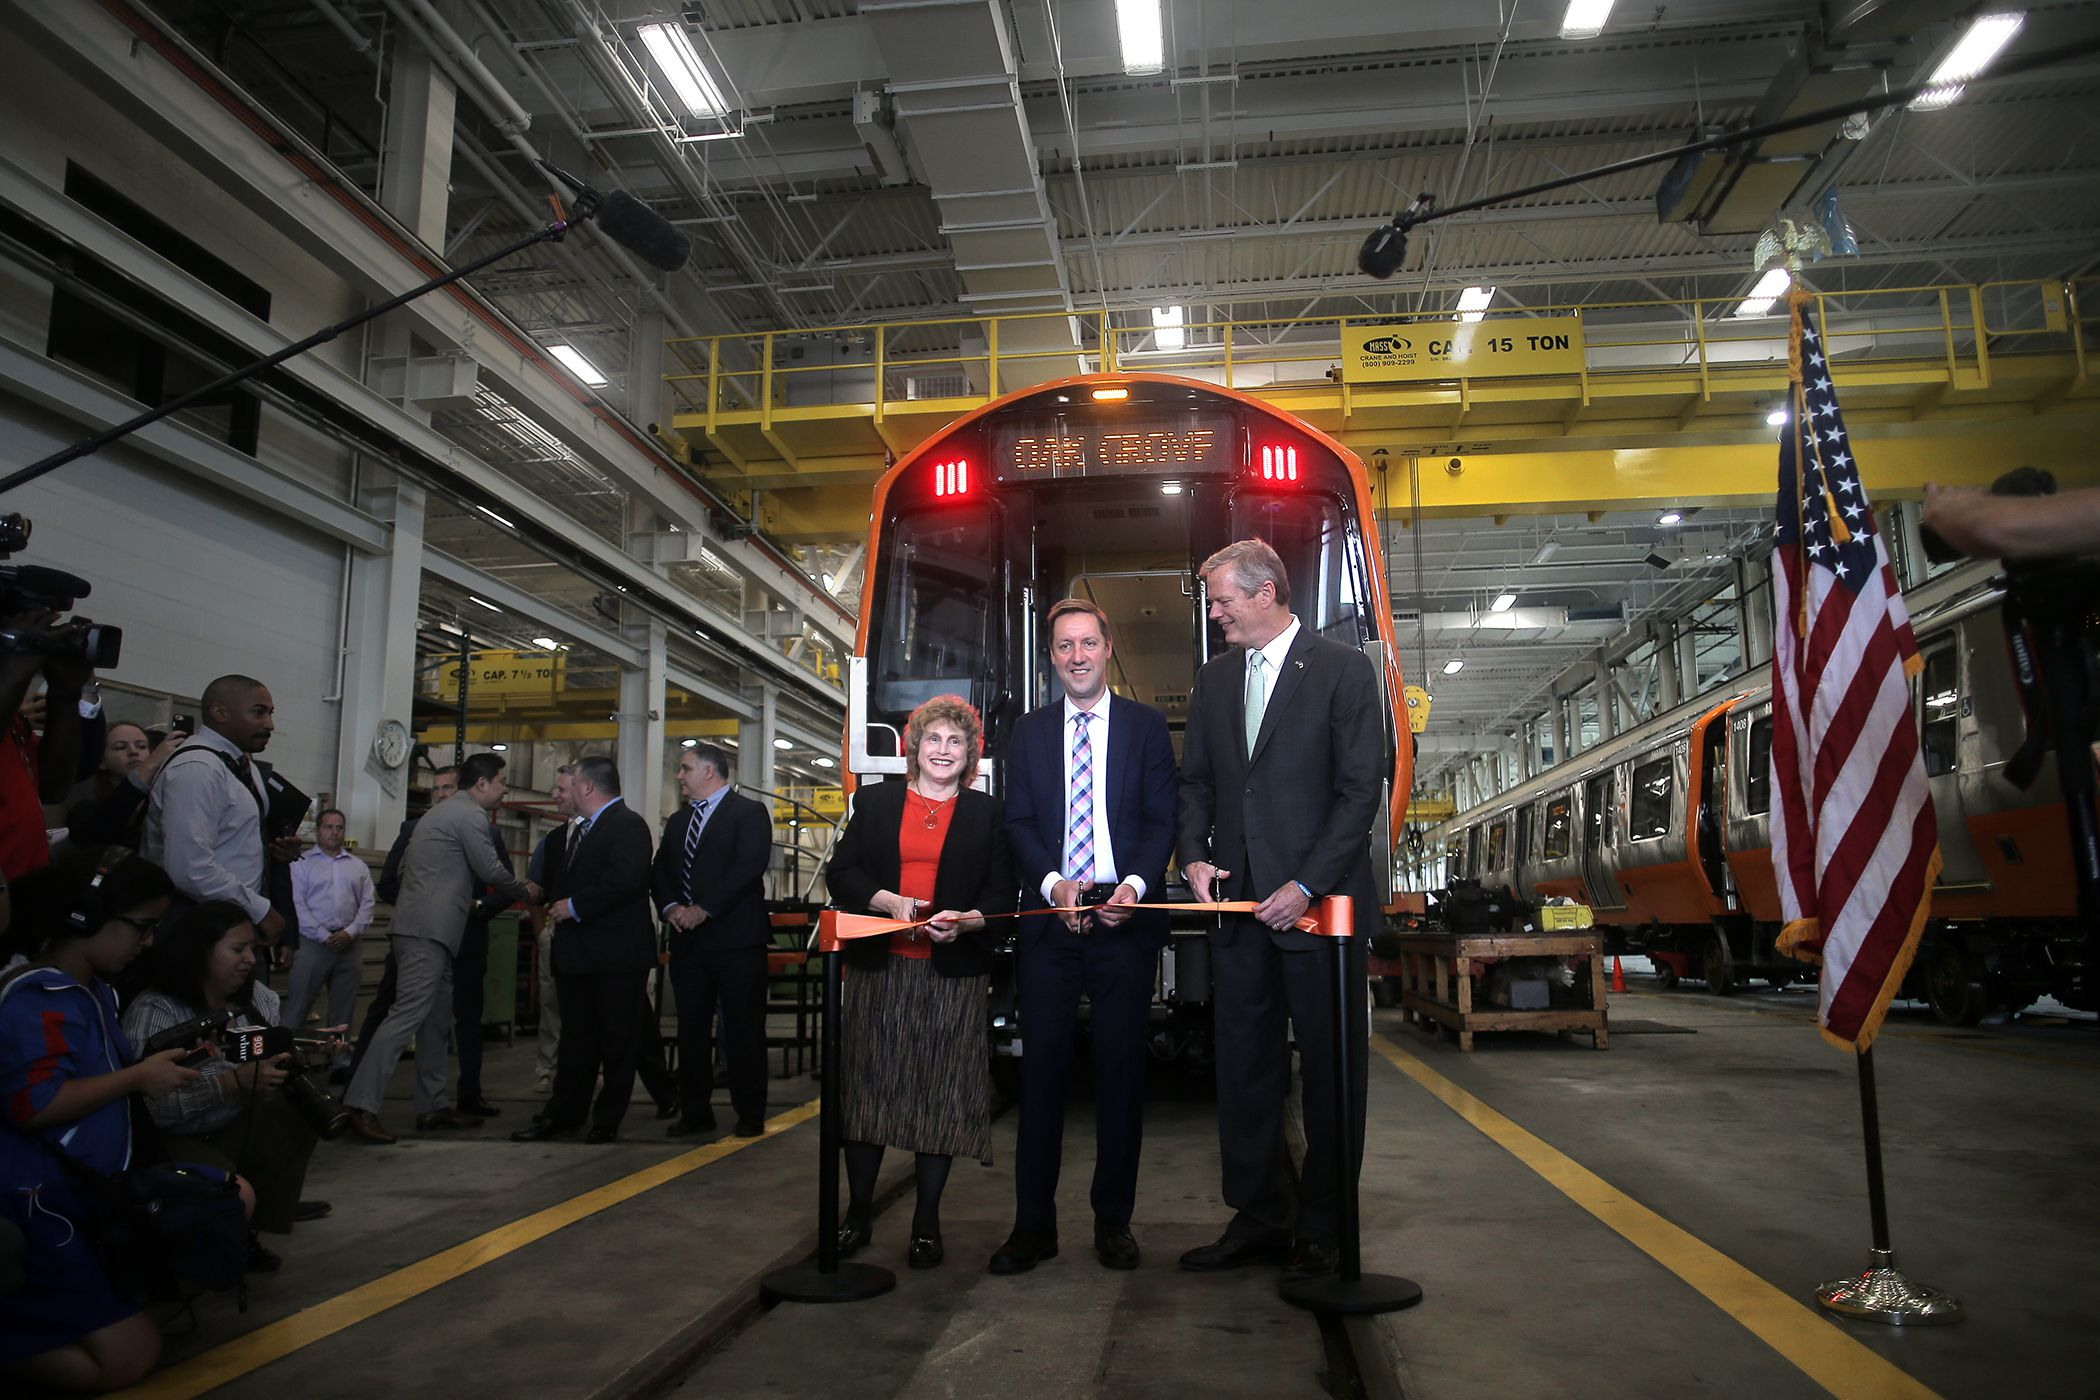 That 'new car smell': Here are the new Orange Line trains